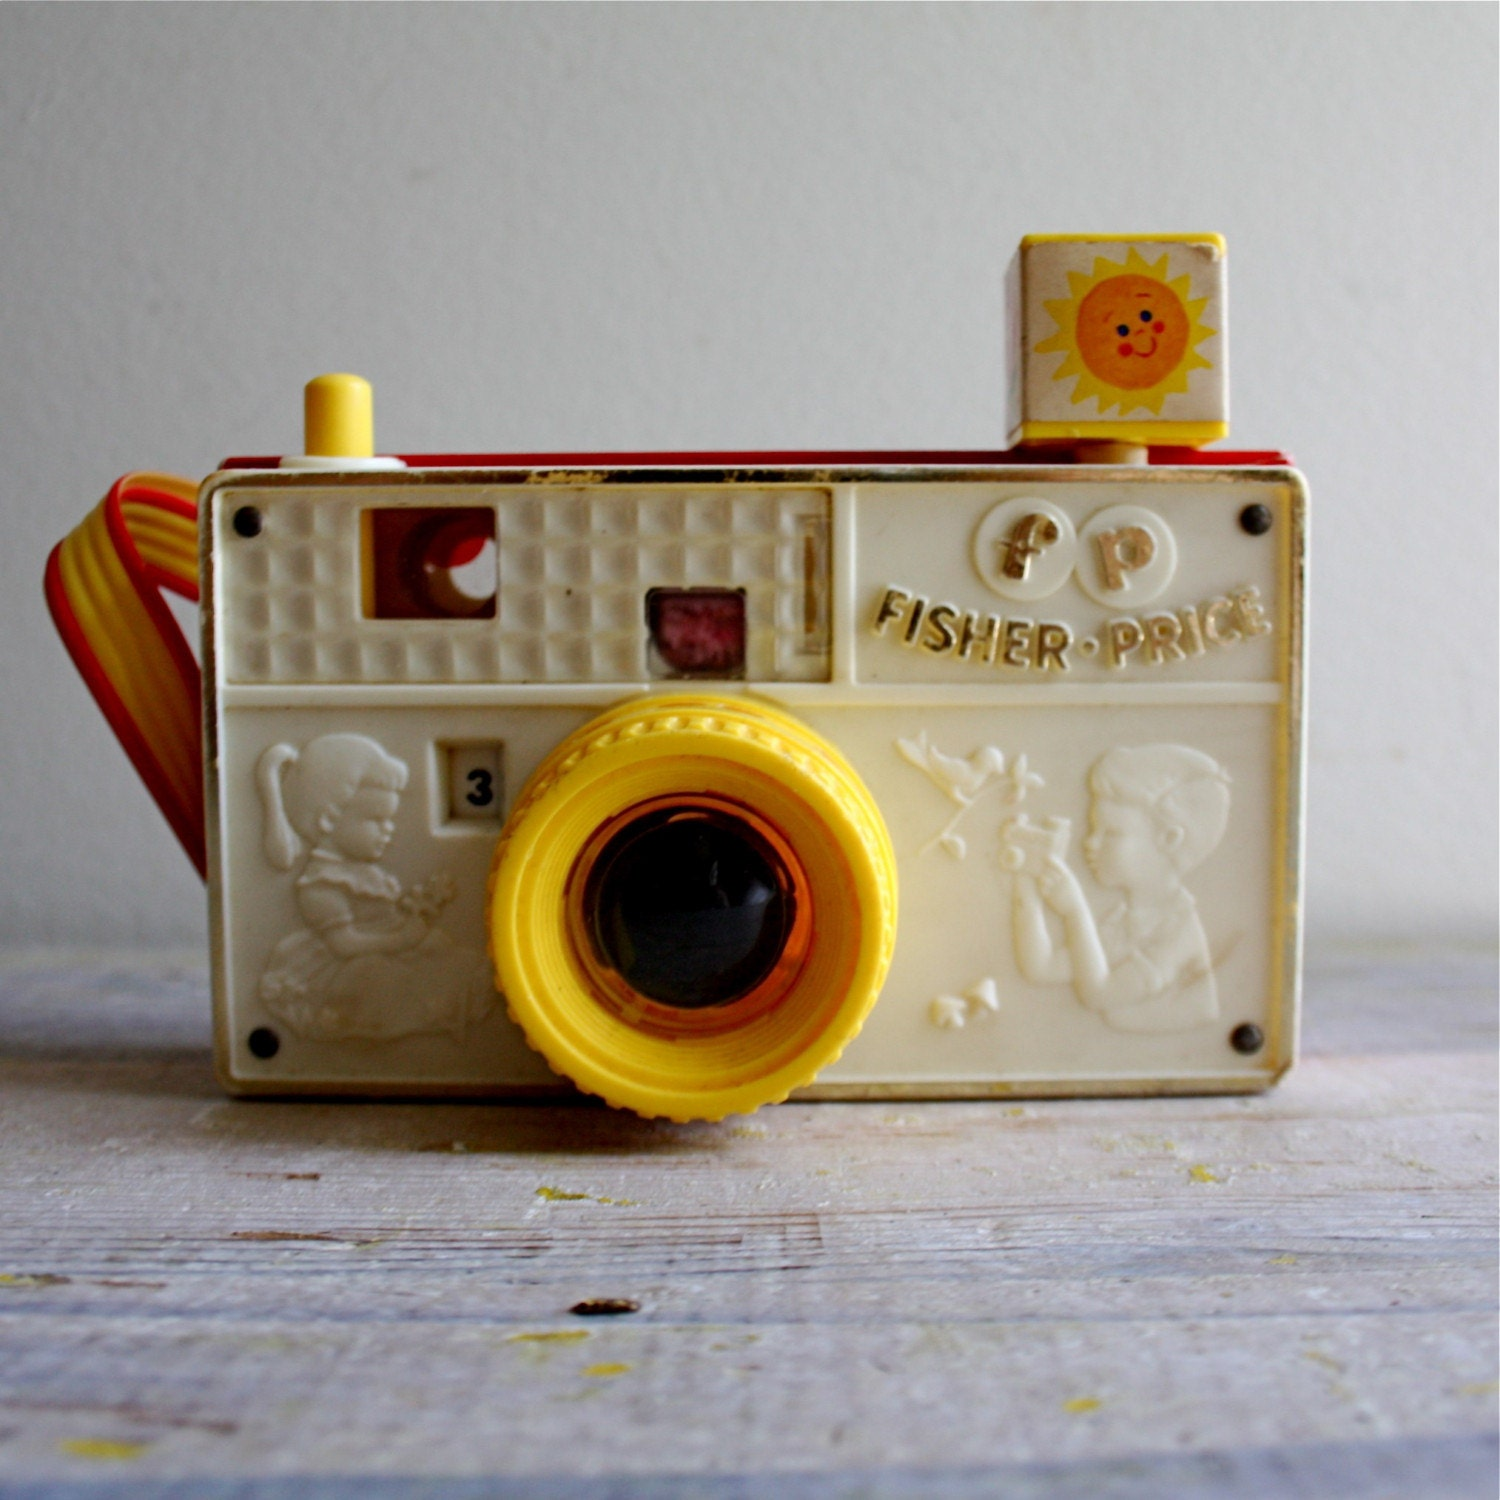 vintage fisher price camera. Black Bedroom Furniture Sets. Home Design Ideas